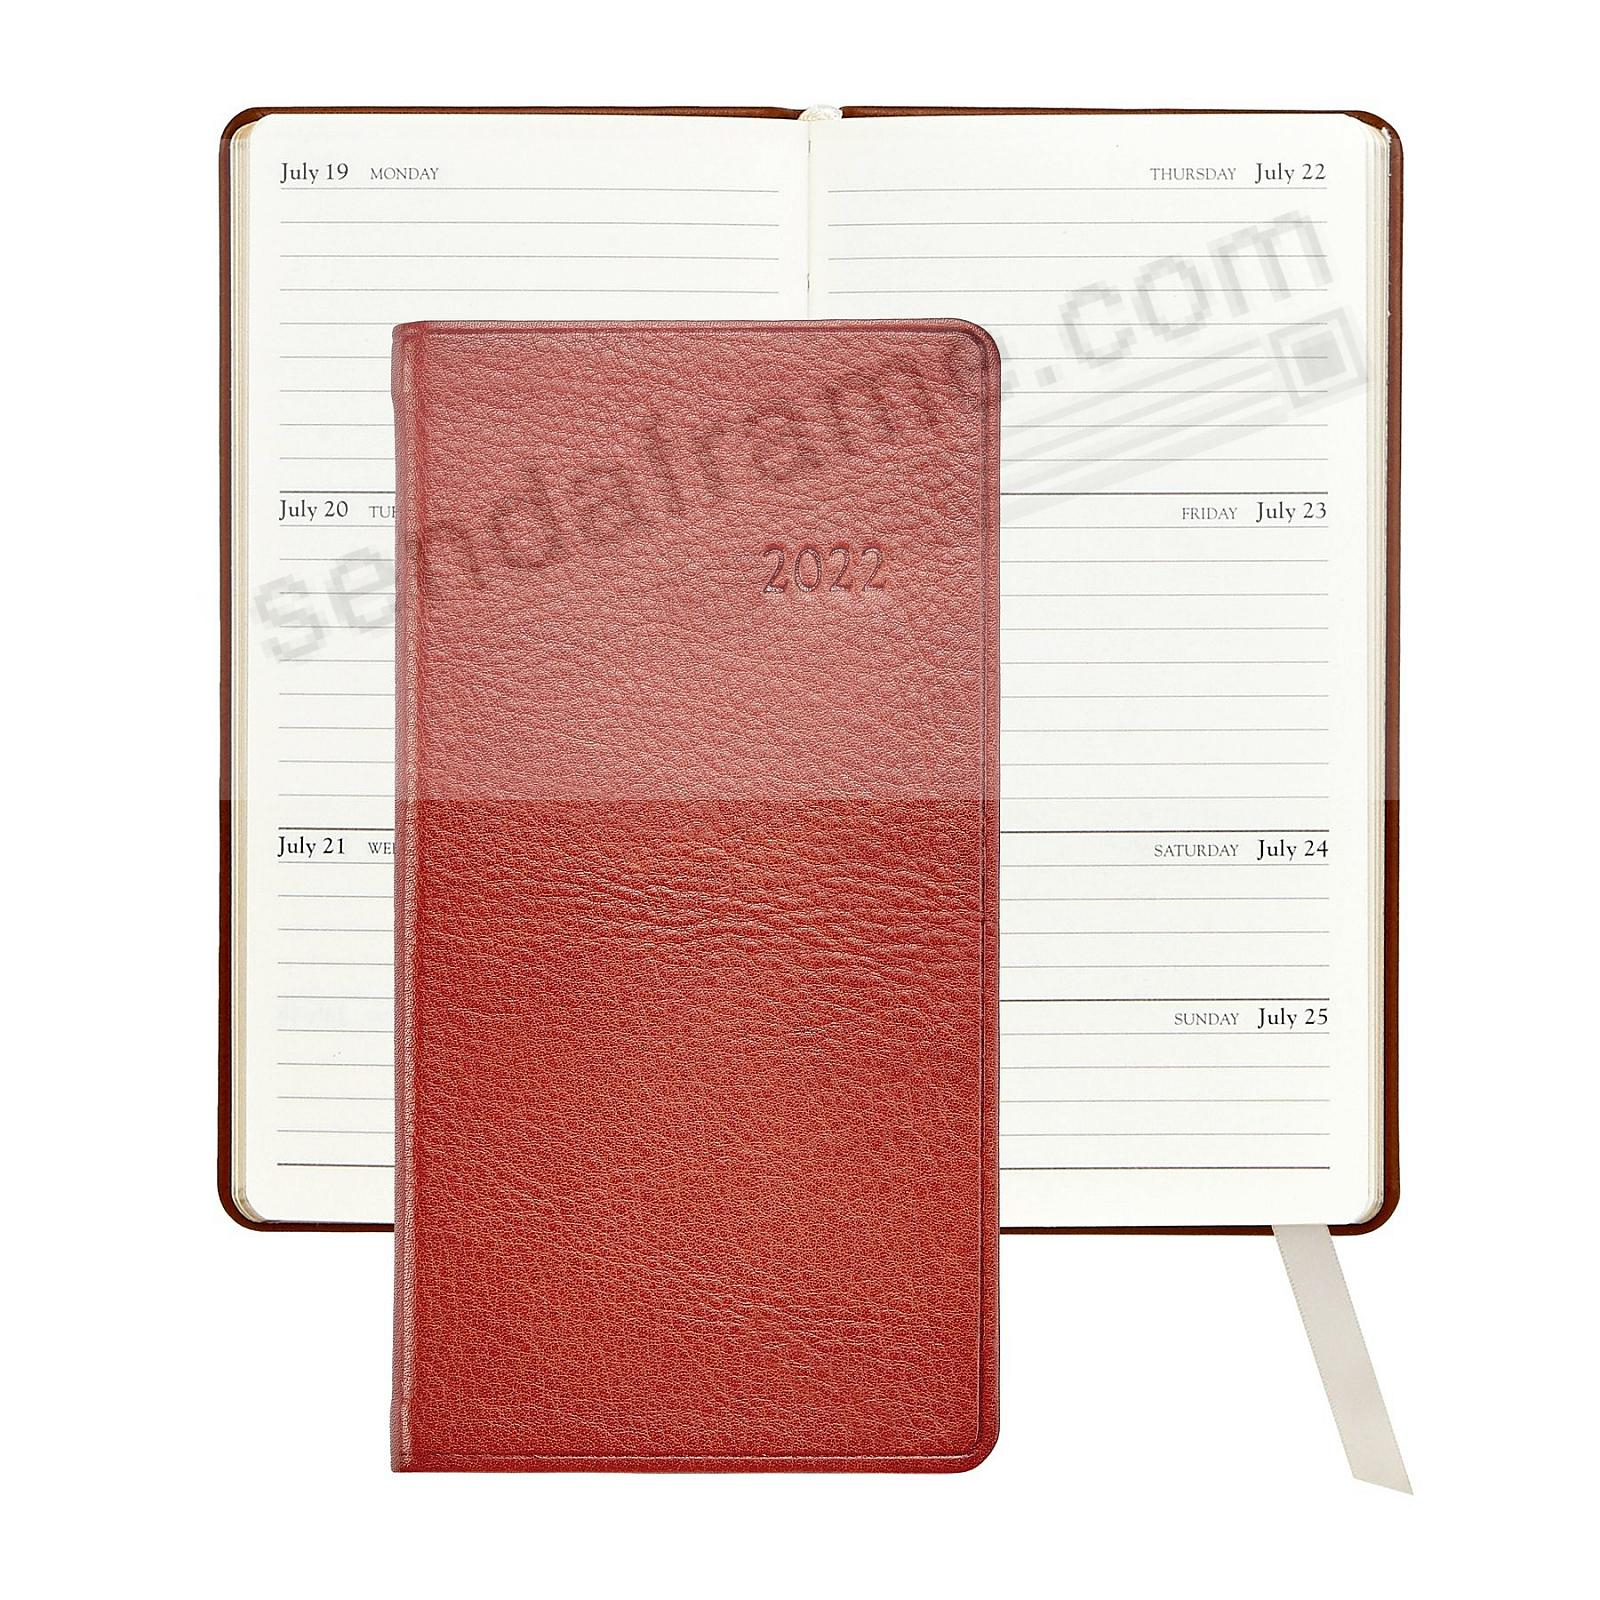 2018 SABLE-TAN 6in Pocket Datebook Diary in Fine Pebble-Grain Leather by Graphic Image™